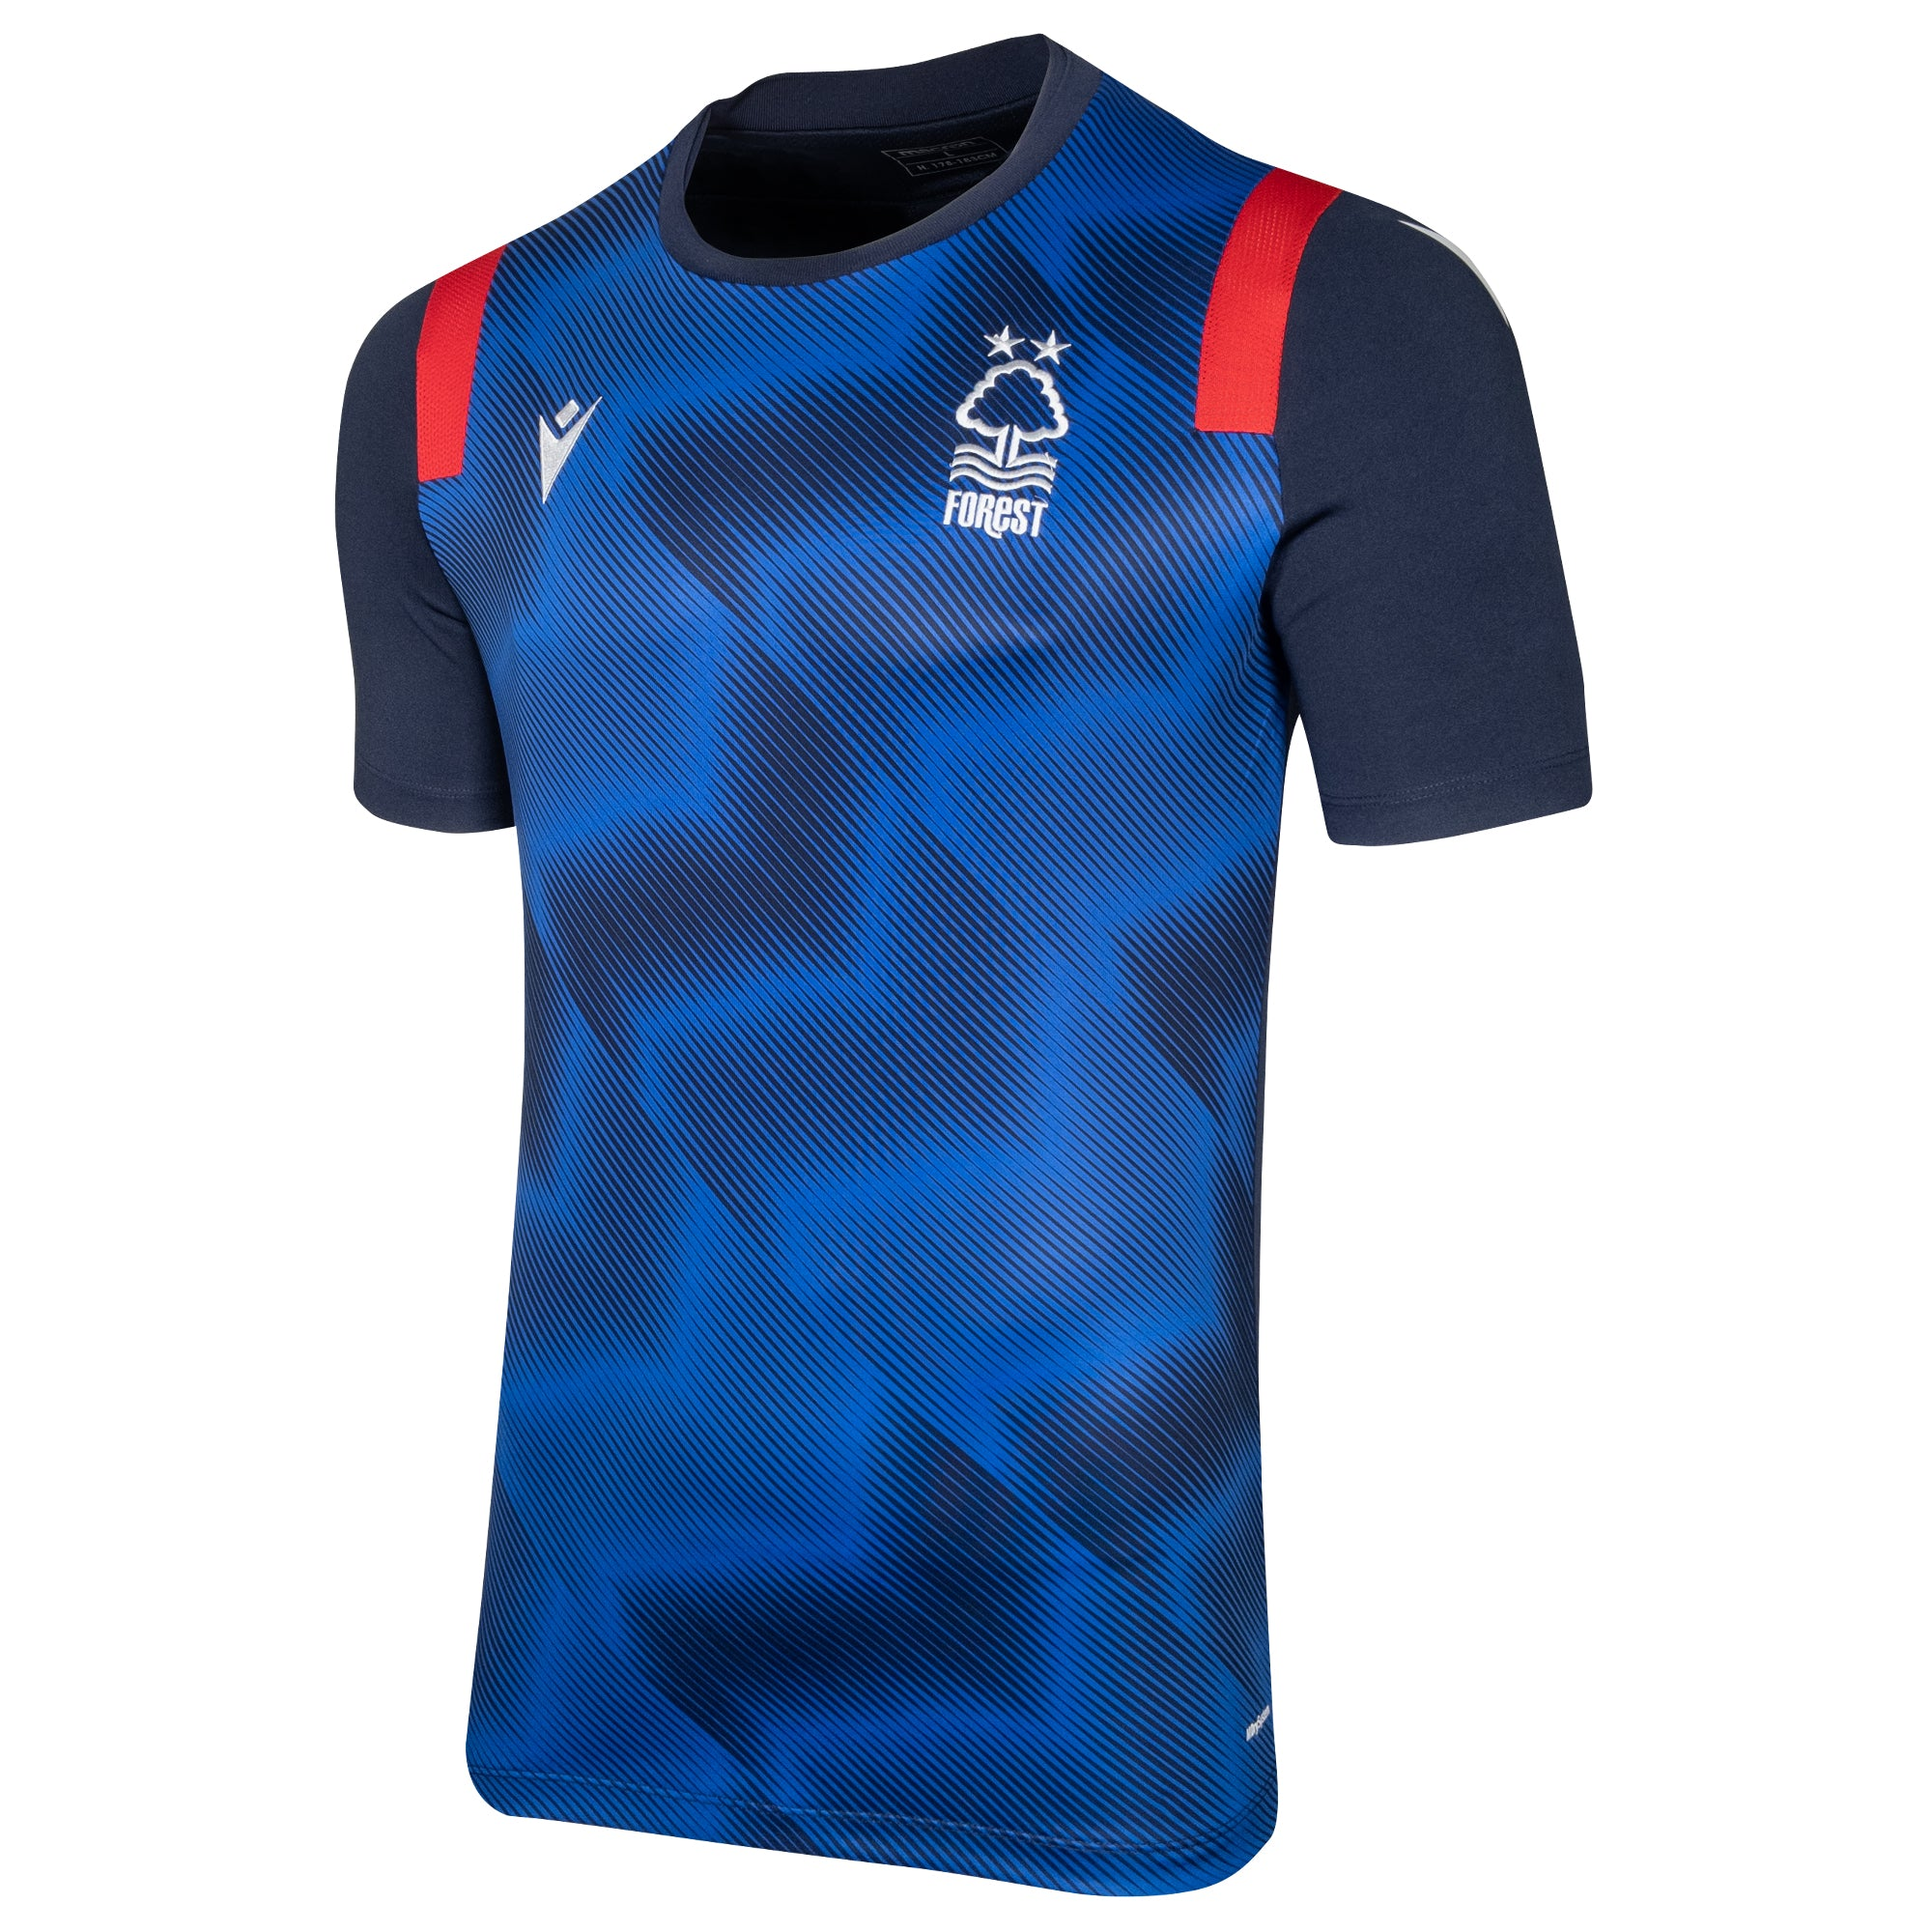 NFFC Junior Staff Training Jersey 2020/21